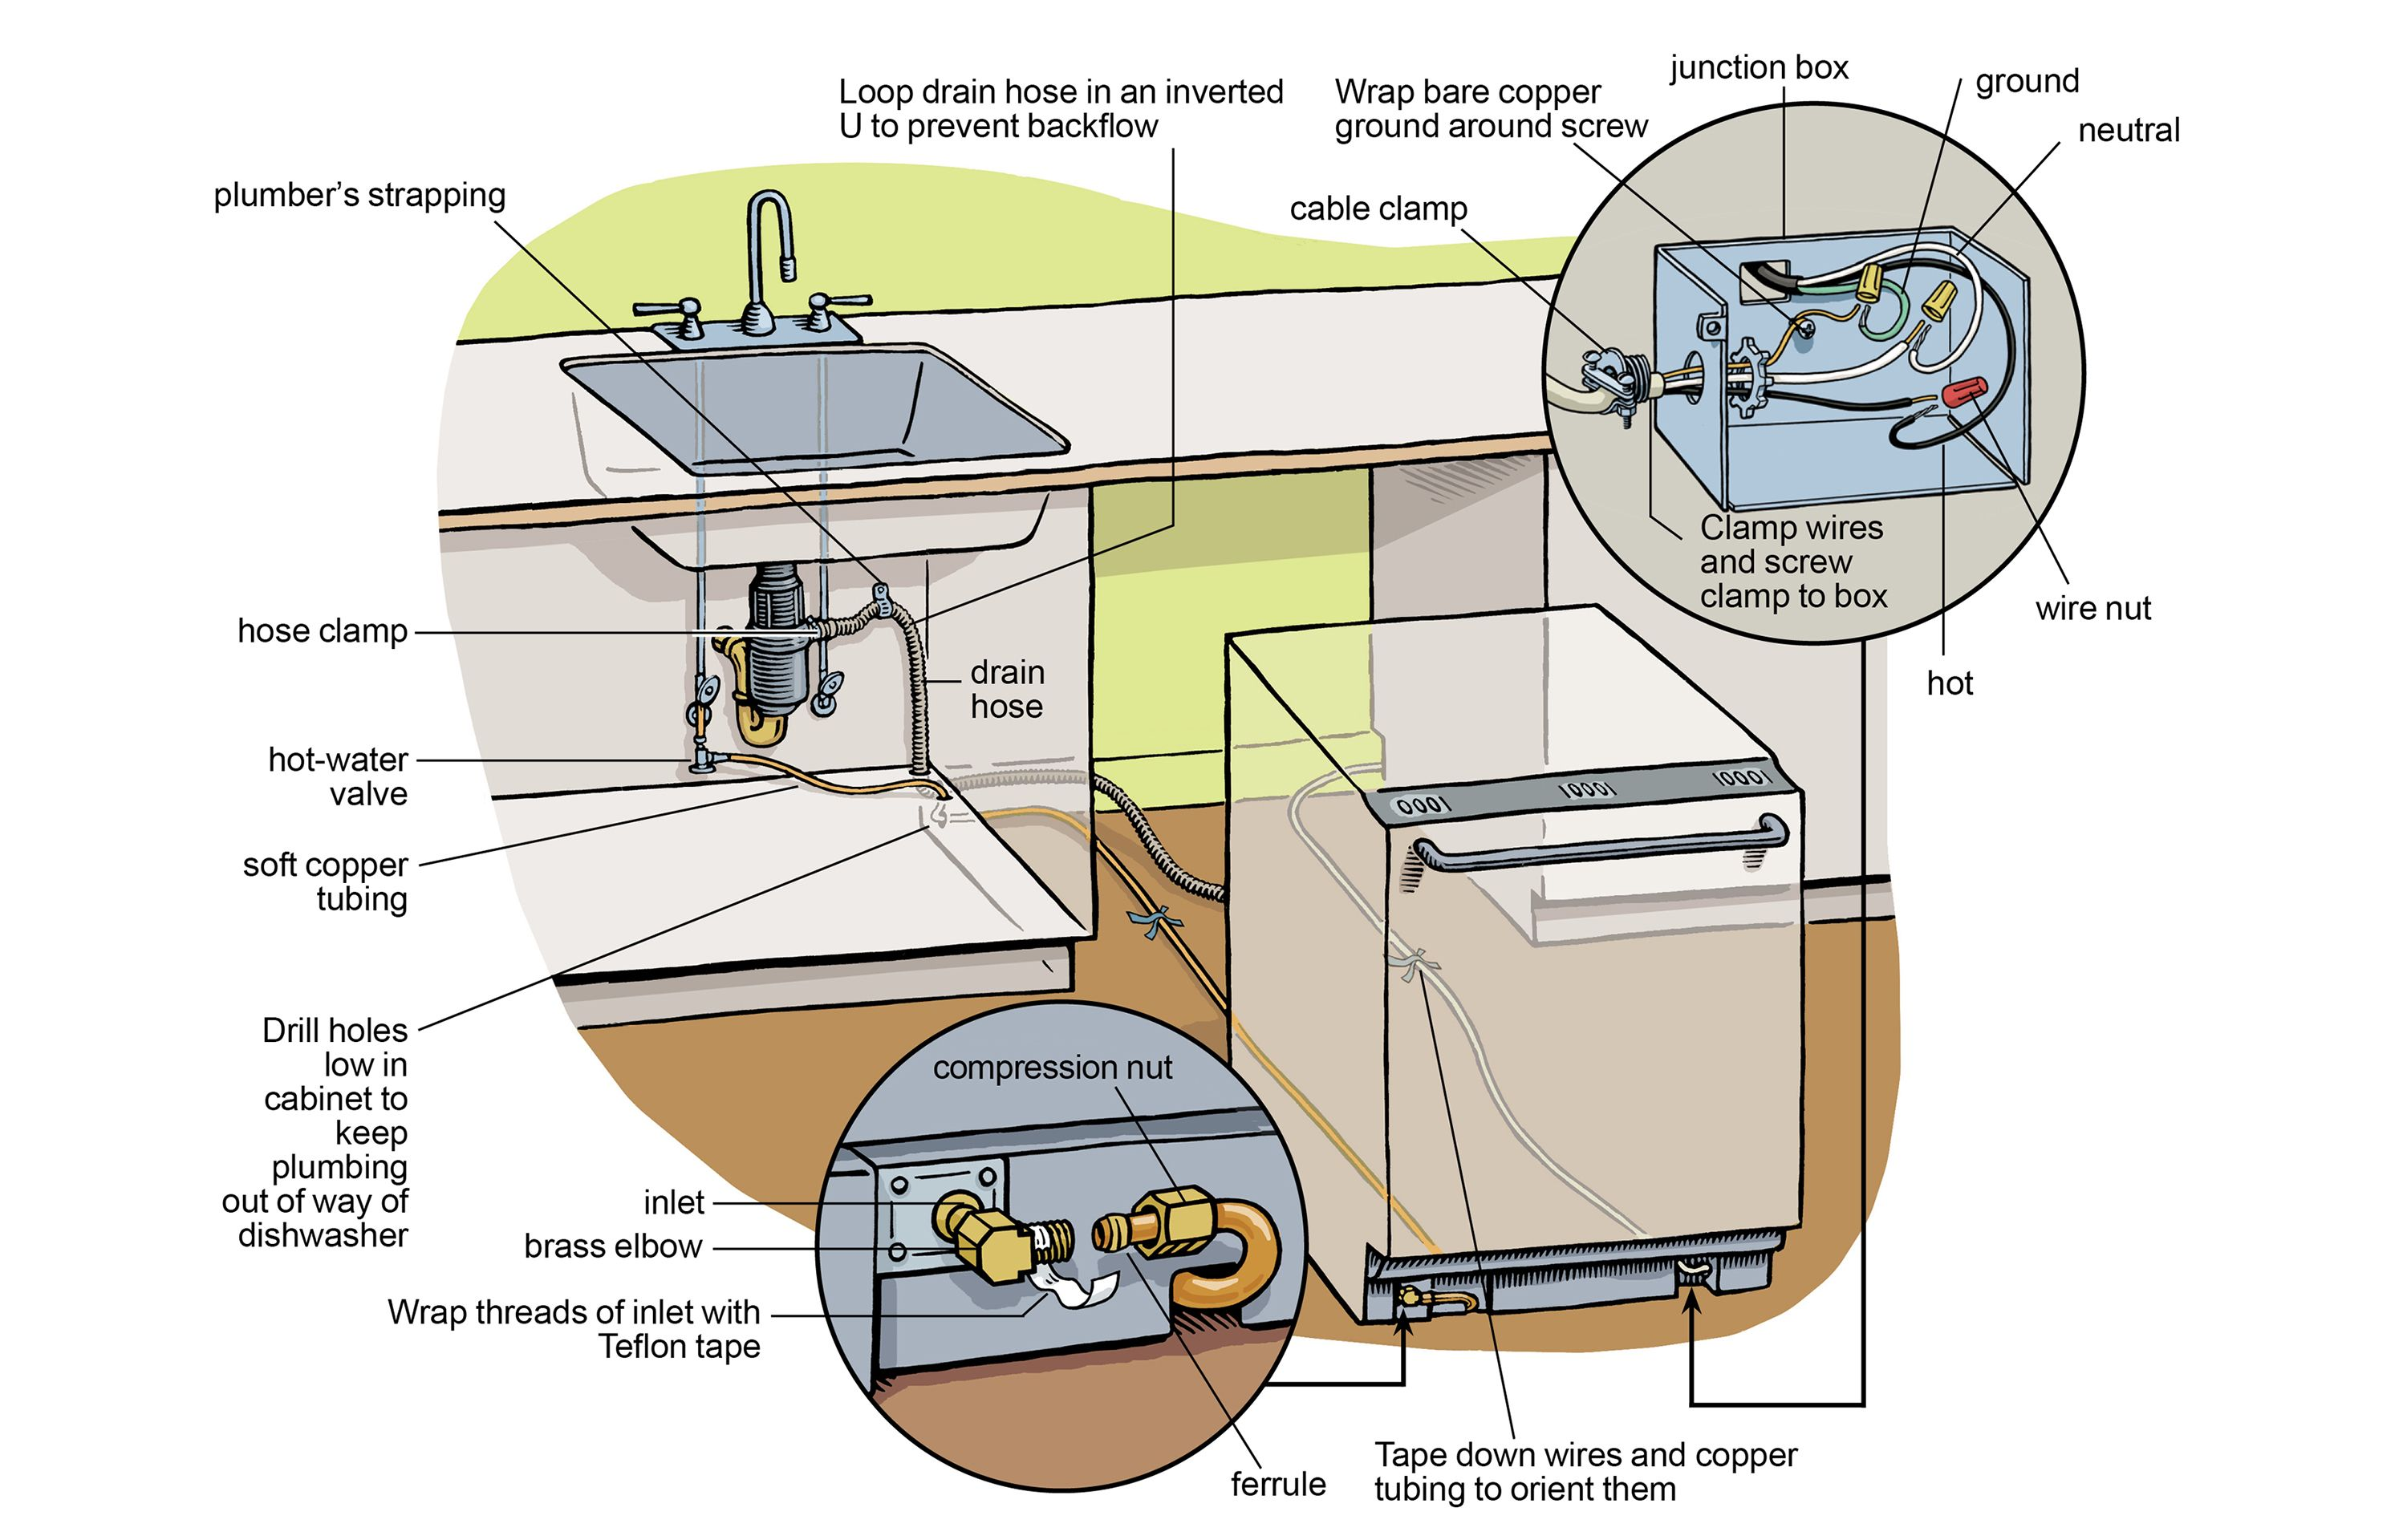 medium resolution of  at this old house can show you how to install a dishwasher in just 10 steps visit our blog to see our detailed instructions and plumbing diagram